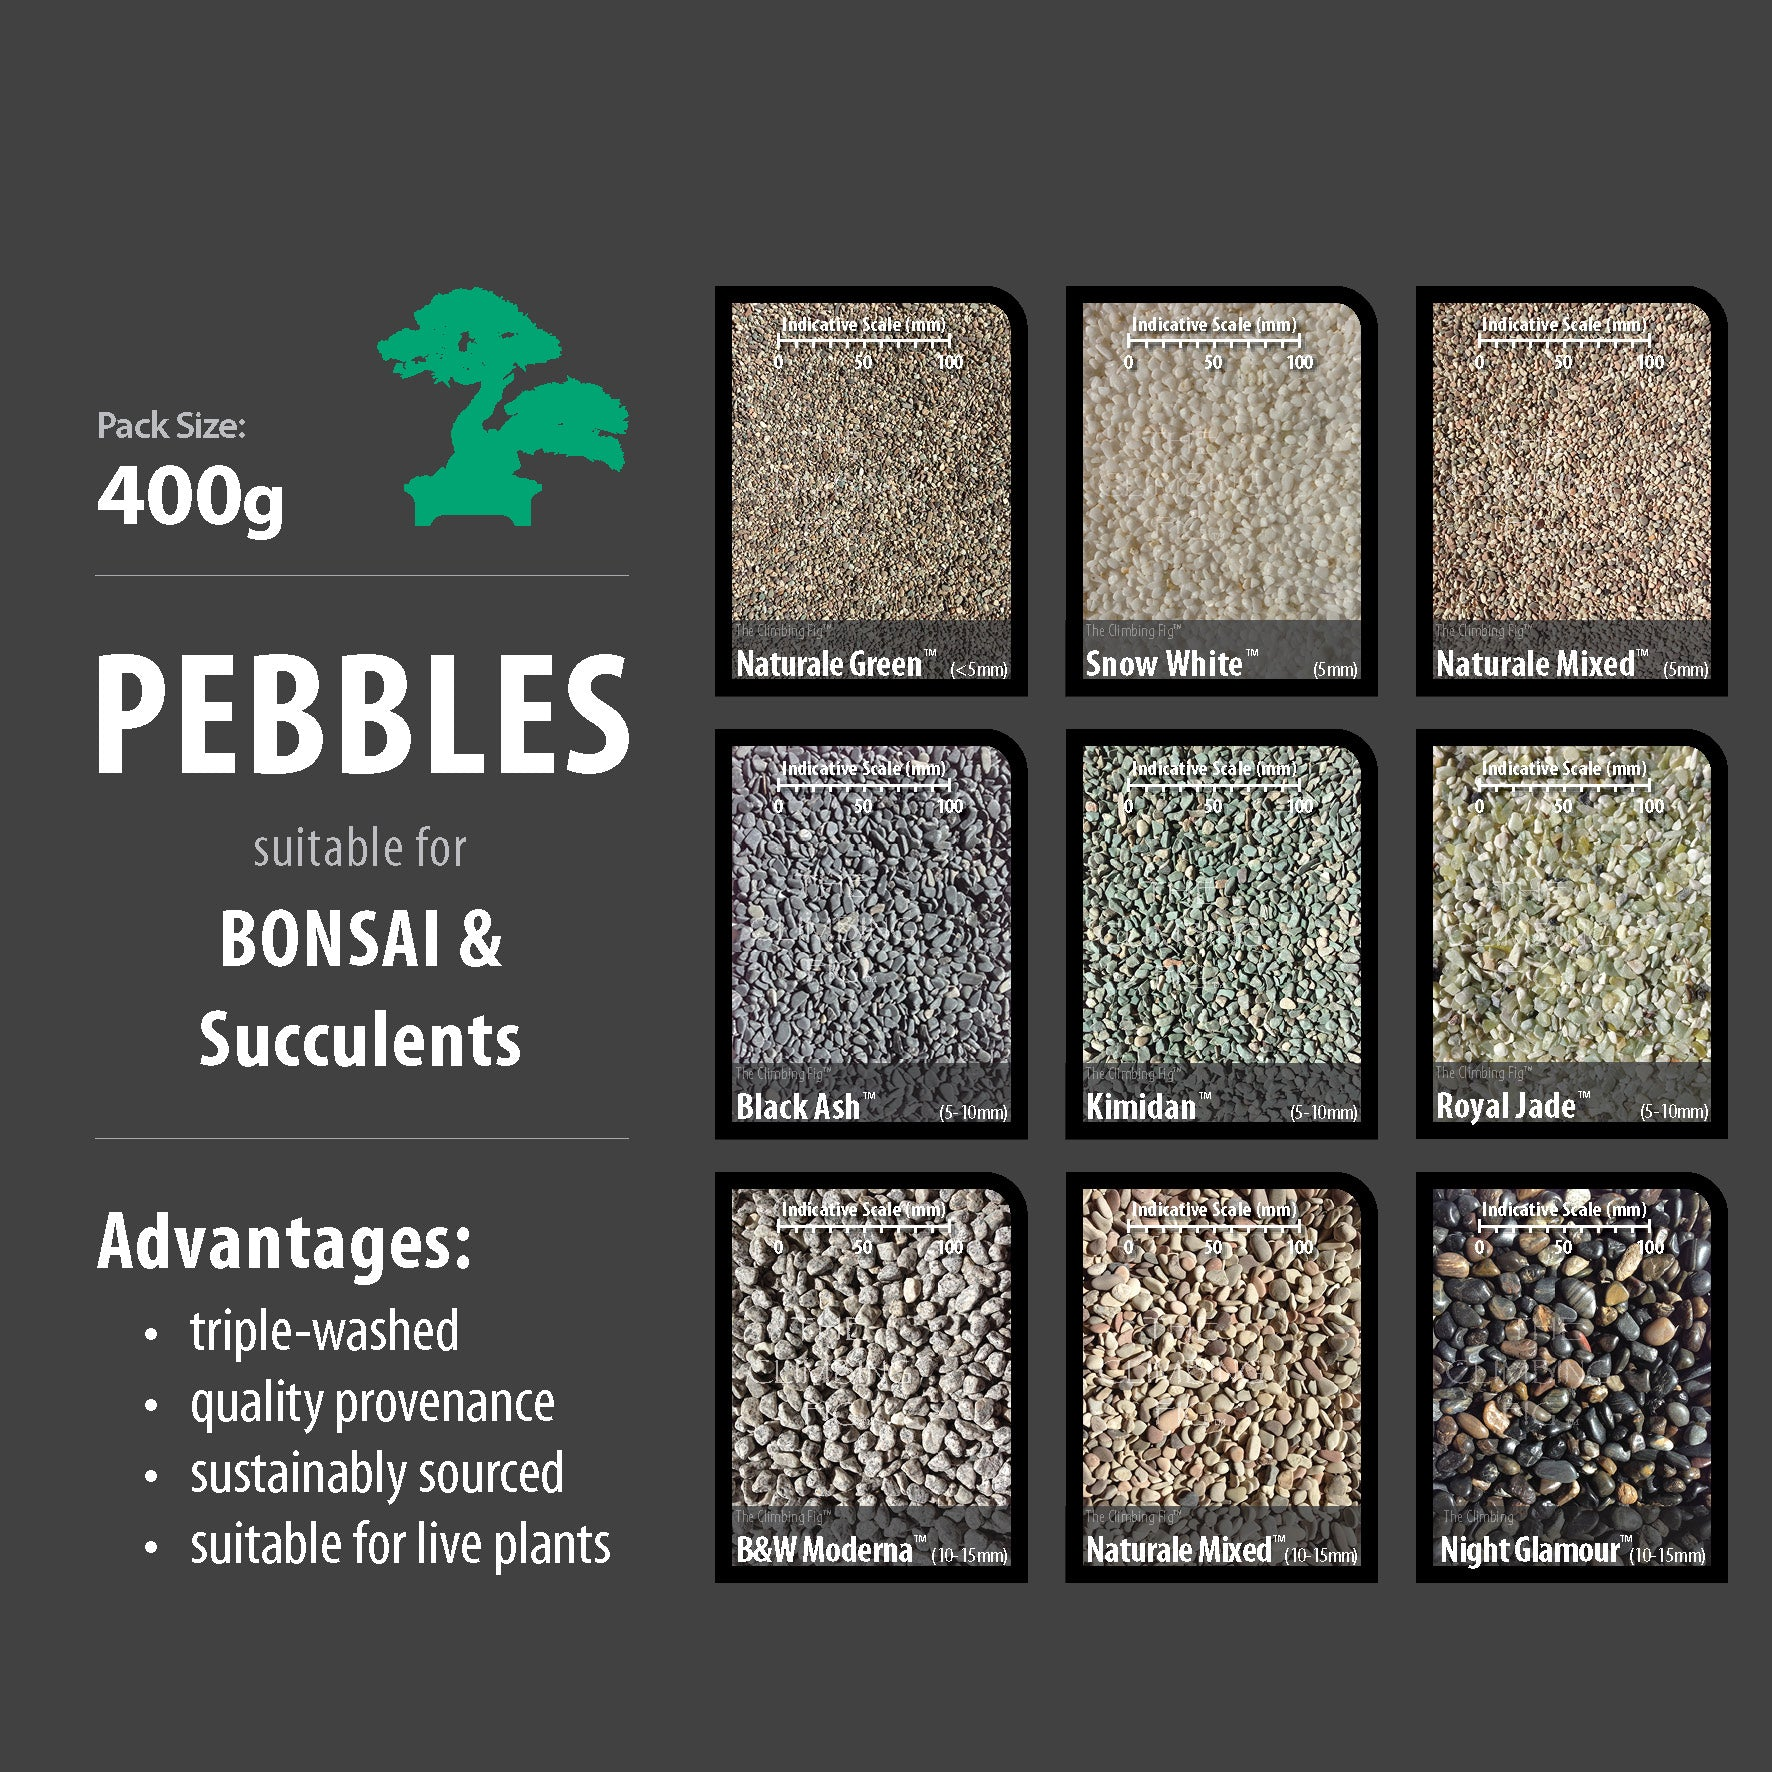 400g Decorative Pebbles for Bonsai, Succulents & Terrariums. Washed large range